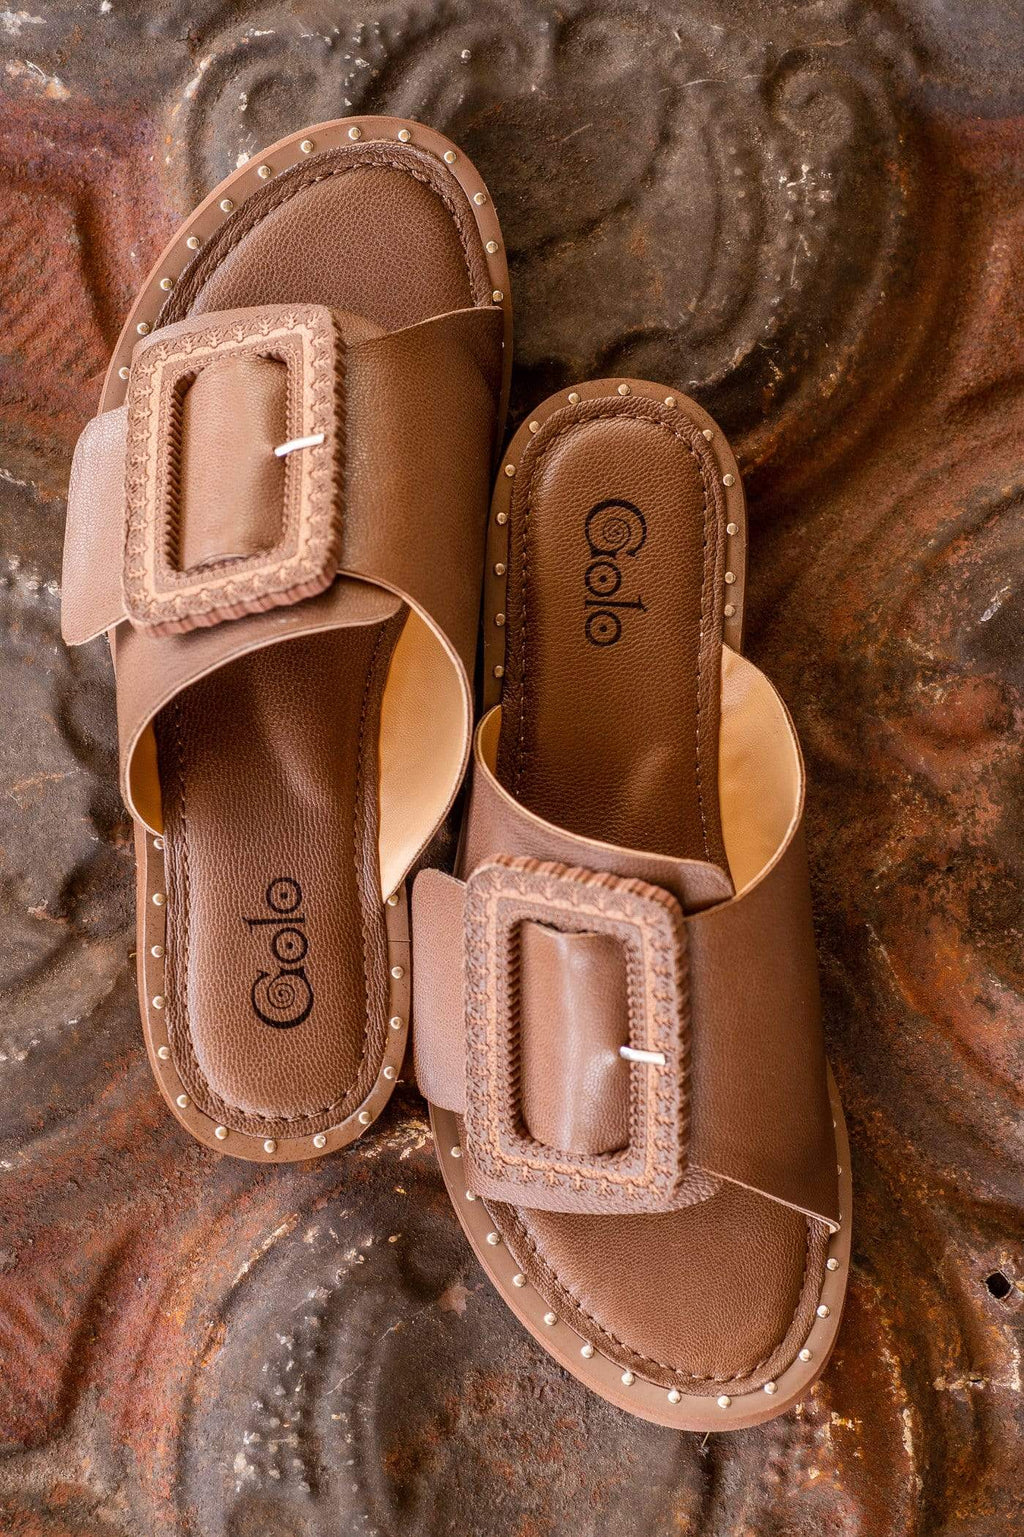 goloshoes Badan golo shoes sandals boots cool fashion co